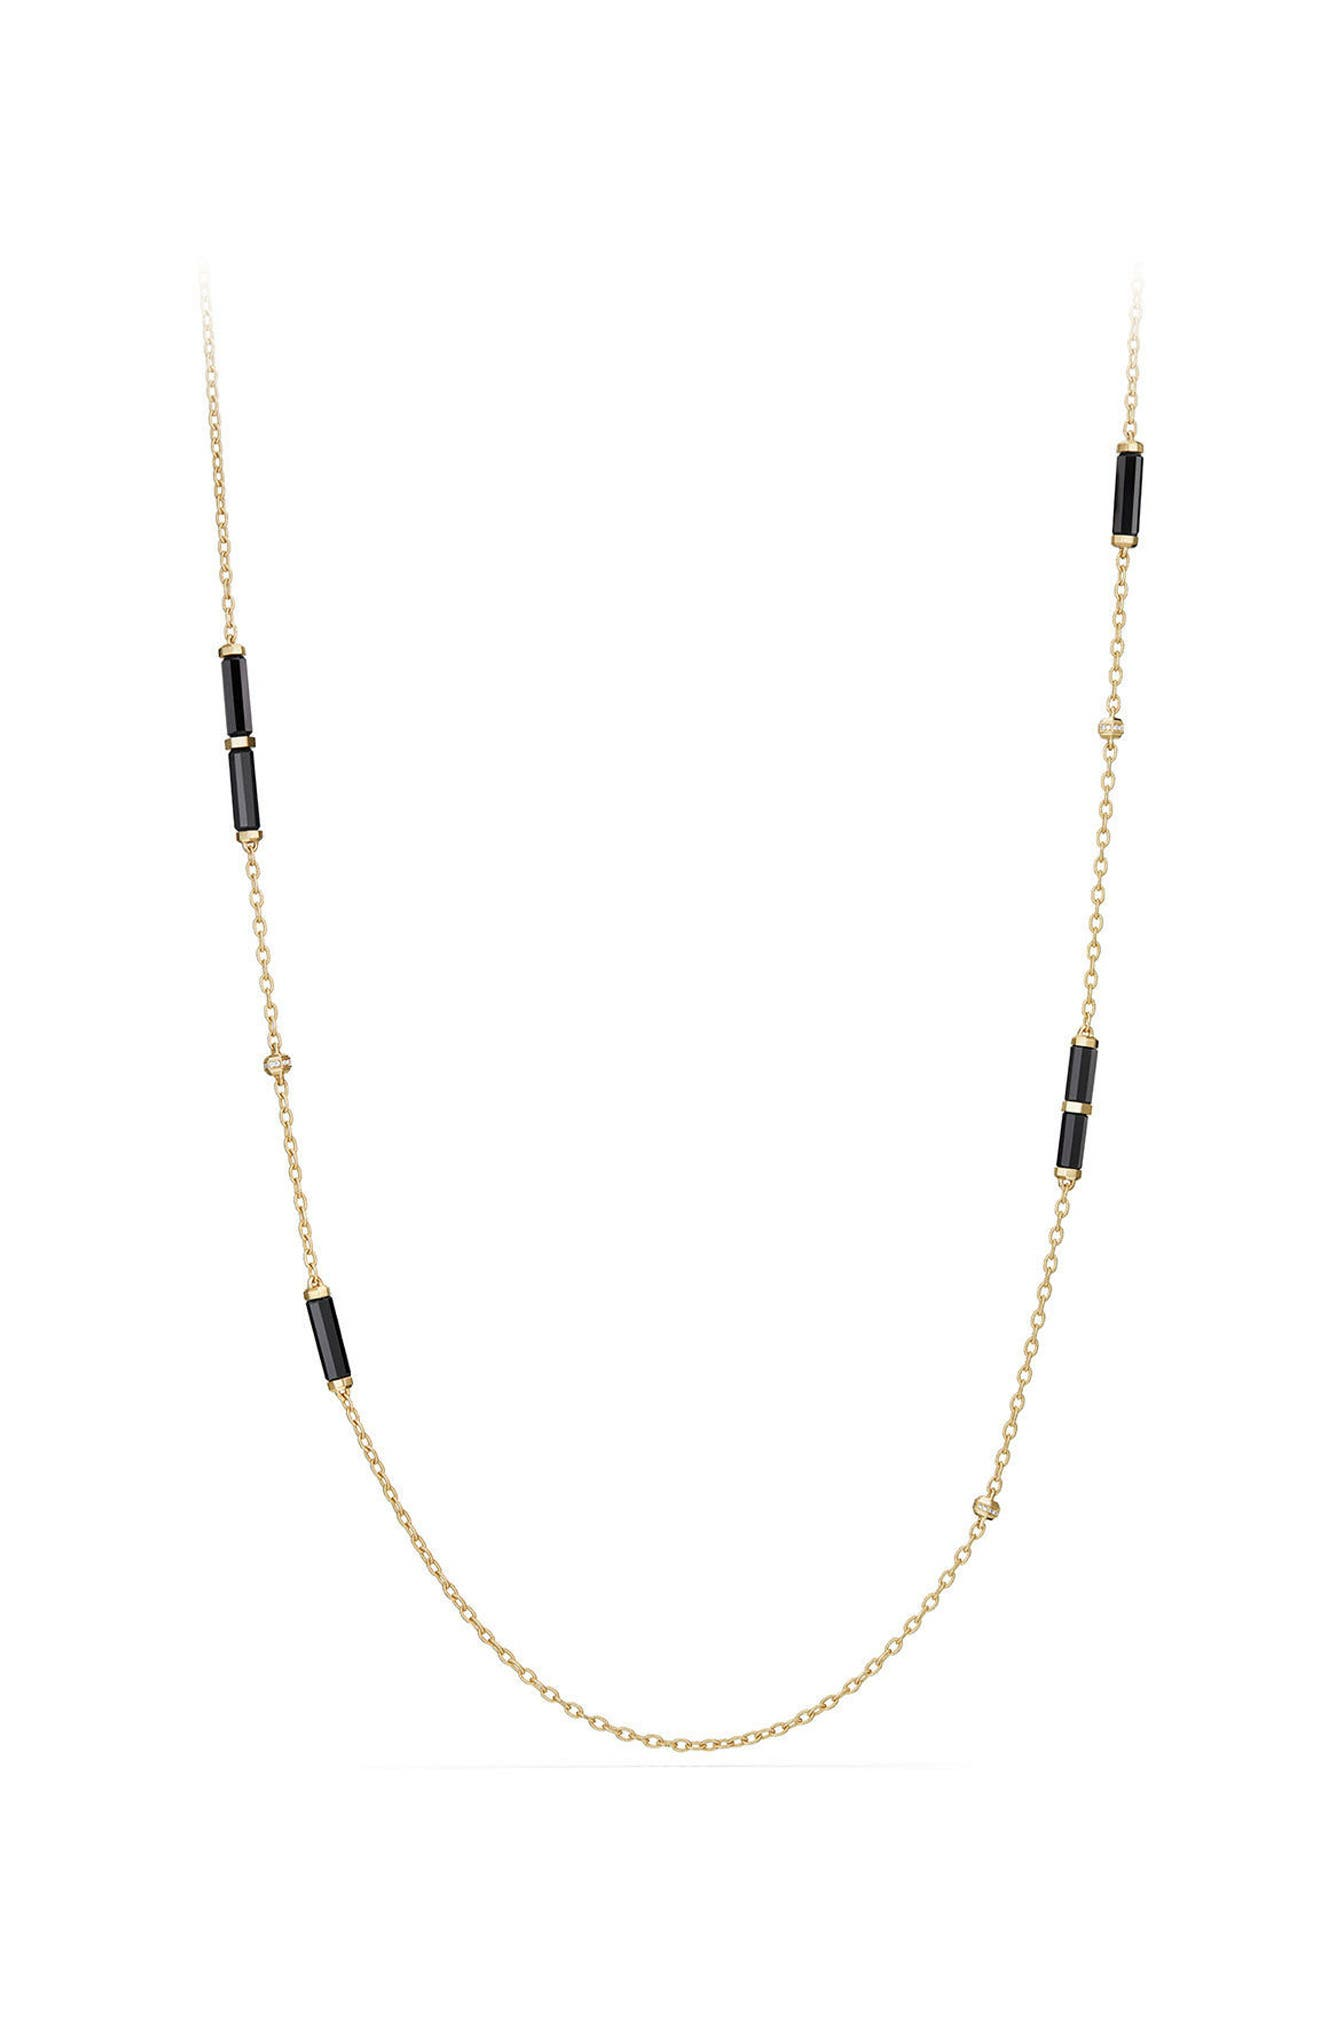 Alternate Image 1 Selected - David Yurman Barrels Long Station Necklace with Diamonds